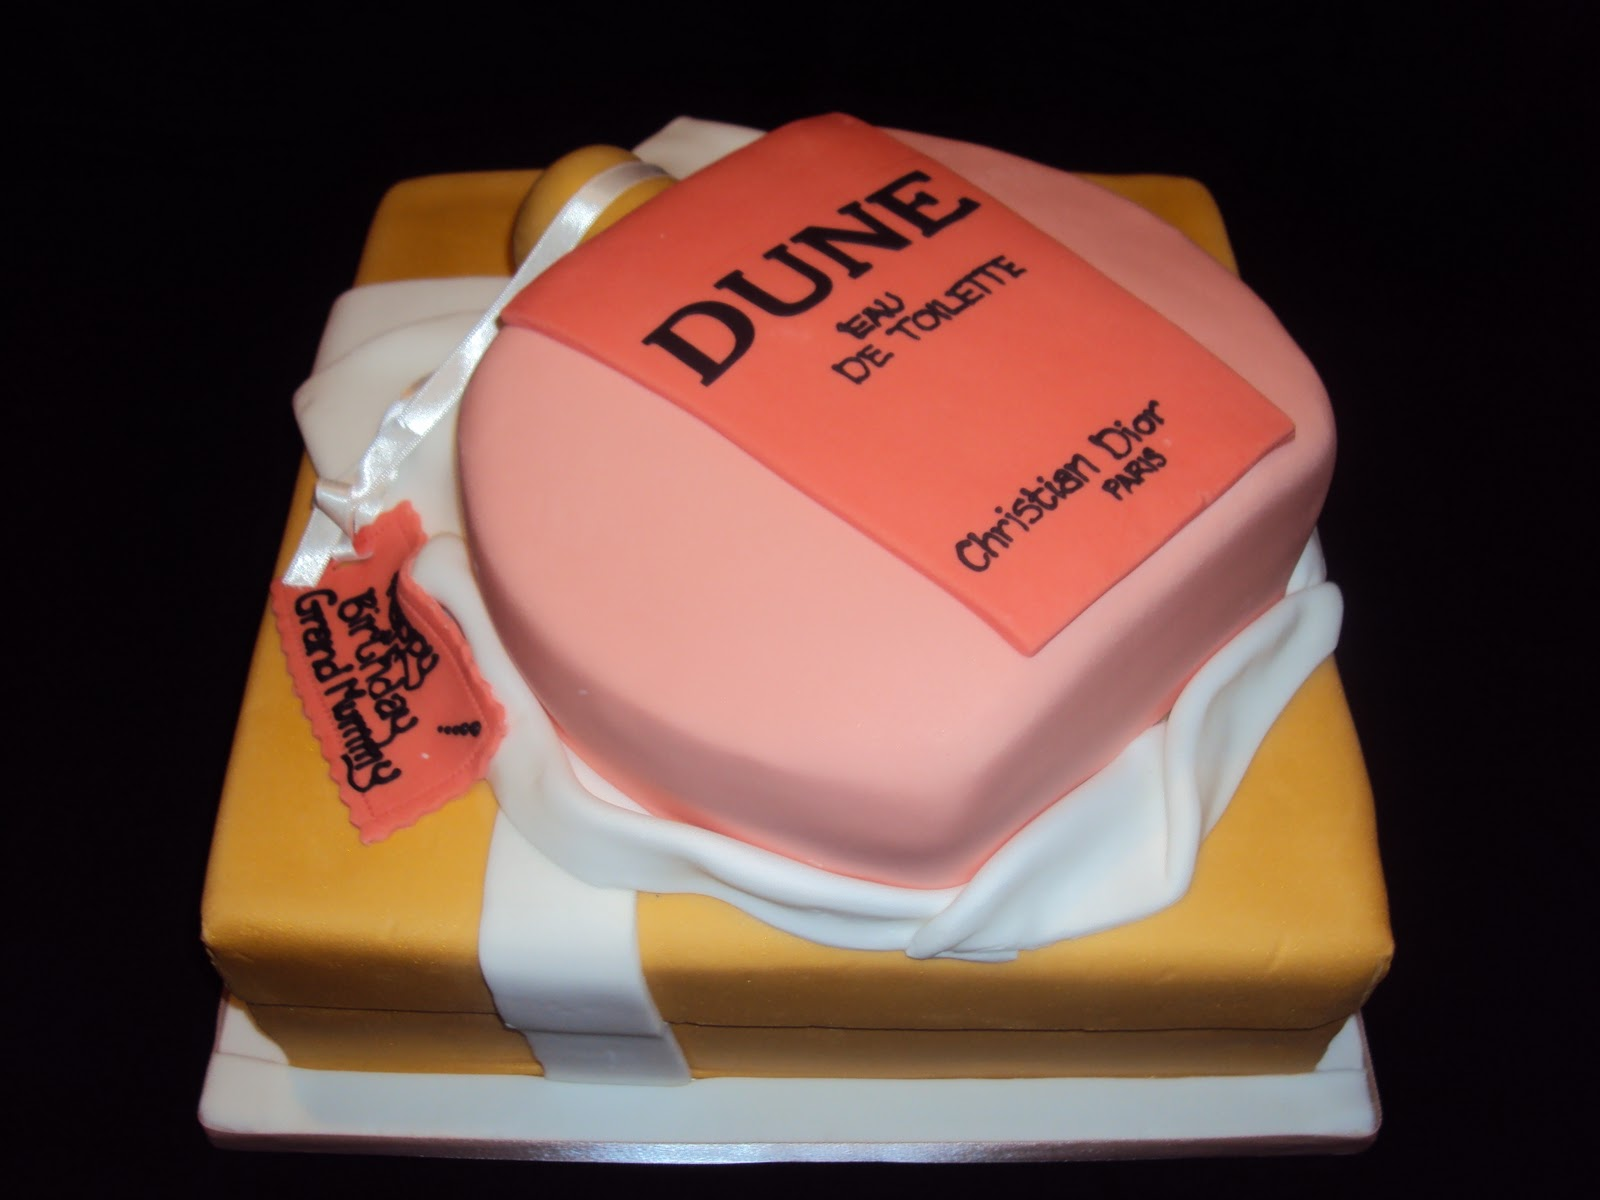 MIMI TO YOU SWEET AND STYLISH CAKES Dune Perfume with Present Box